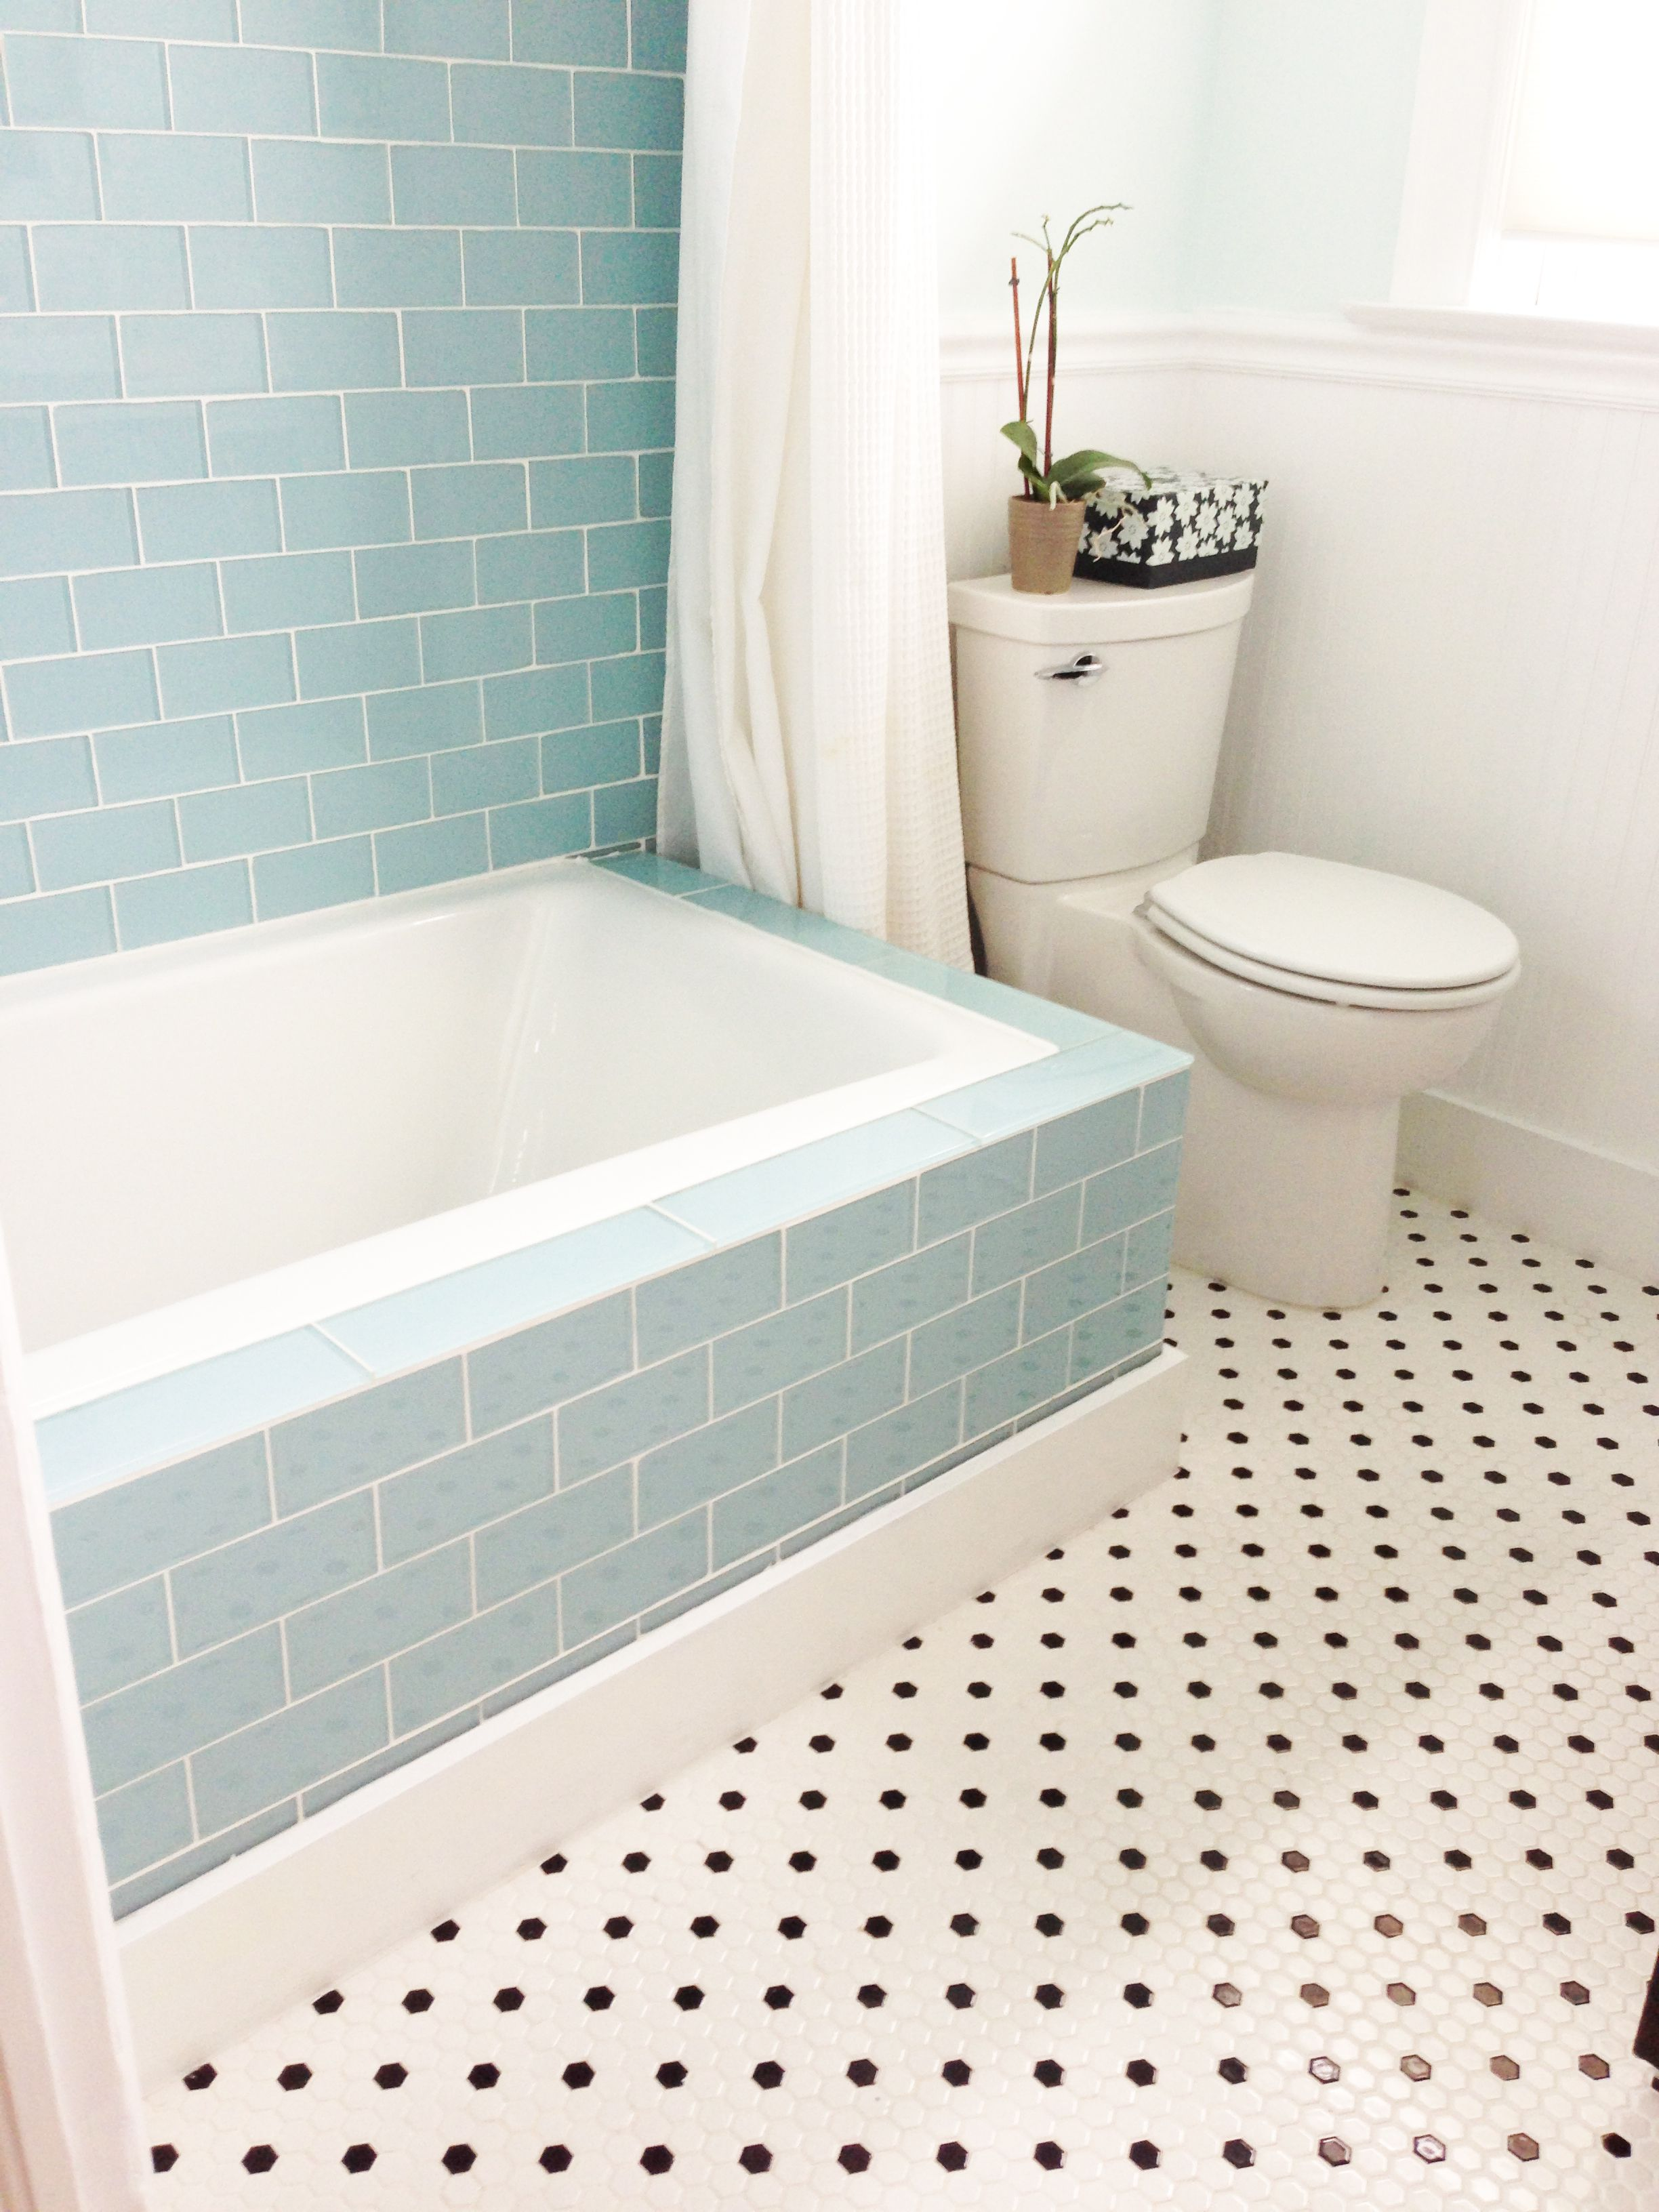 Vapor glass subway tile bathtub surround subway tiles and bathtubs vapor glass subway tile dailygadgetfo Gallery